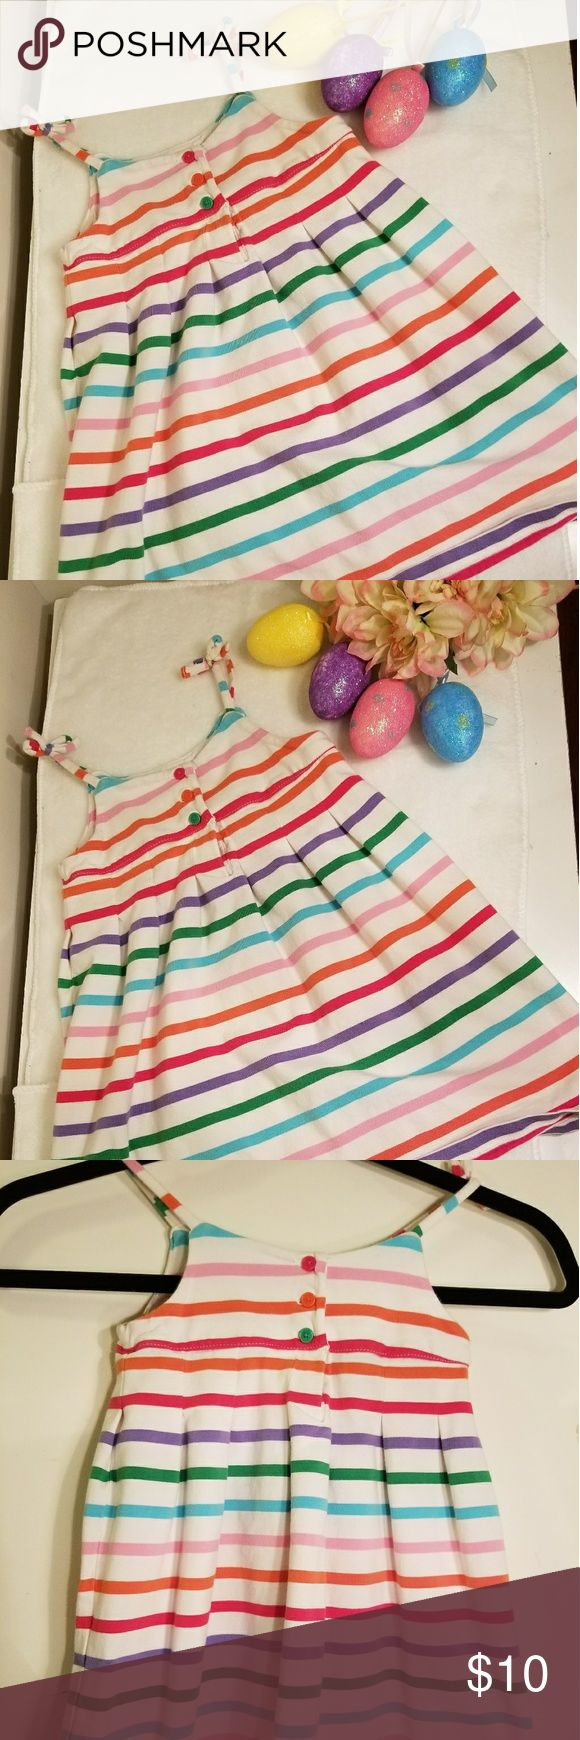 Spring dress for toddler Dress for toddler  Brand baby gap Toddler 3 years Multicolored dress  perfect for Easter ! baby gap Dresses Casual